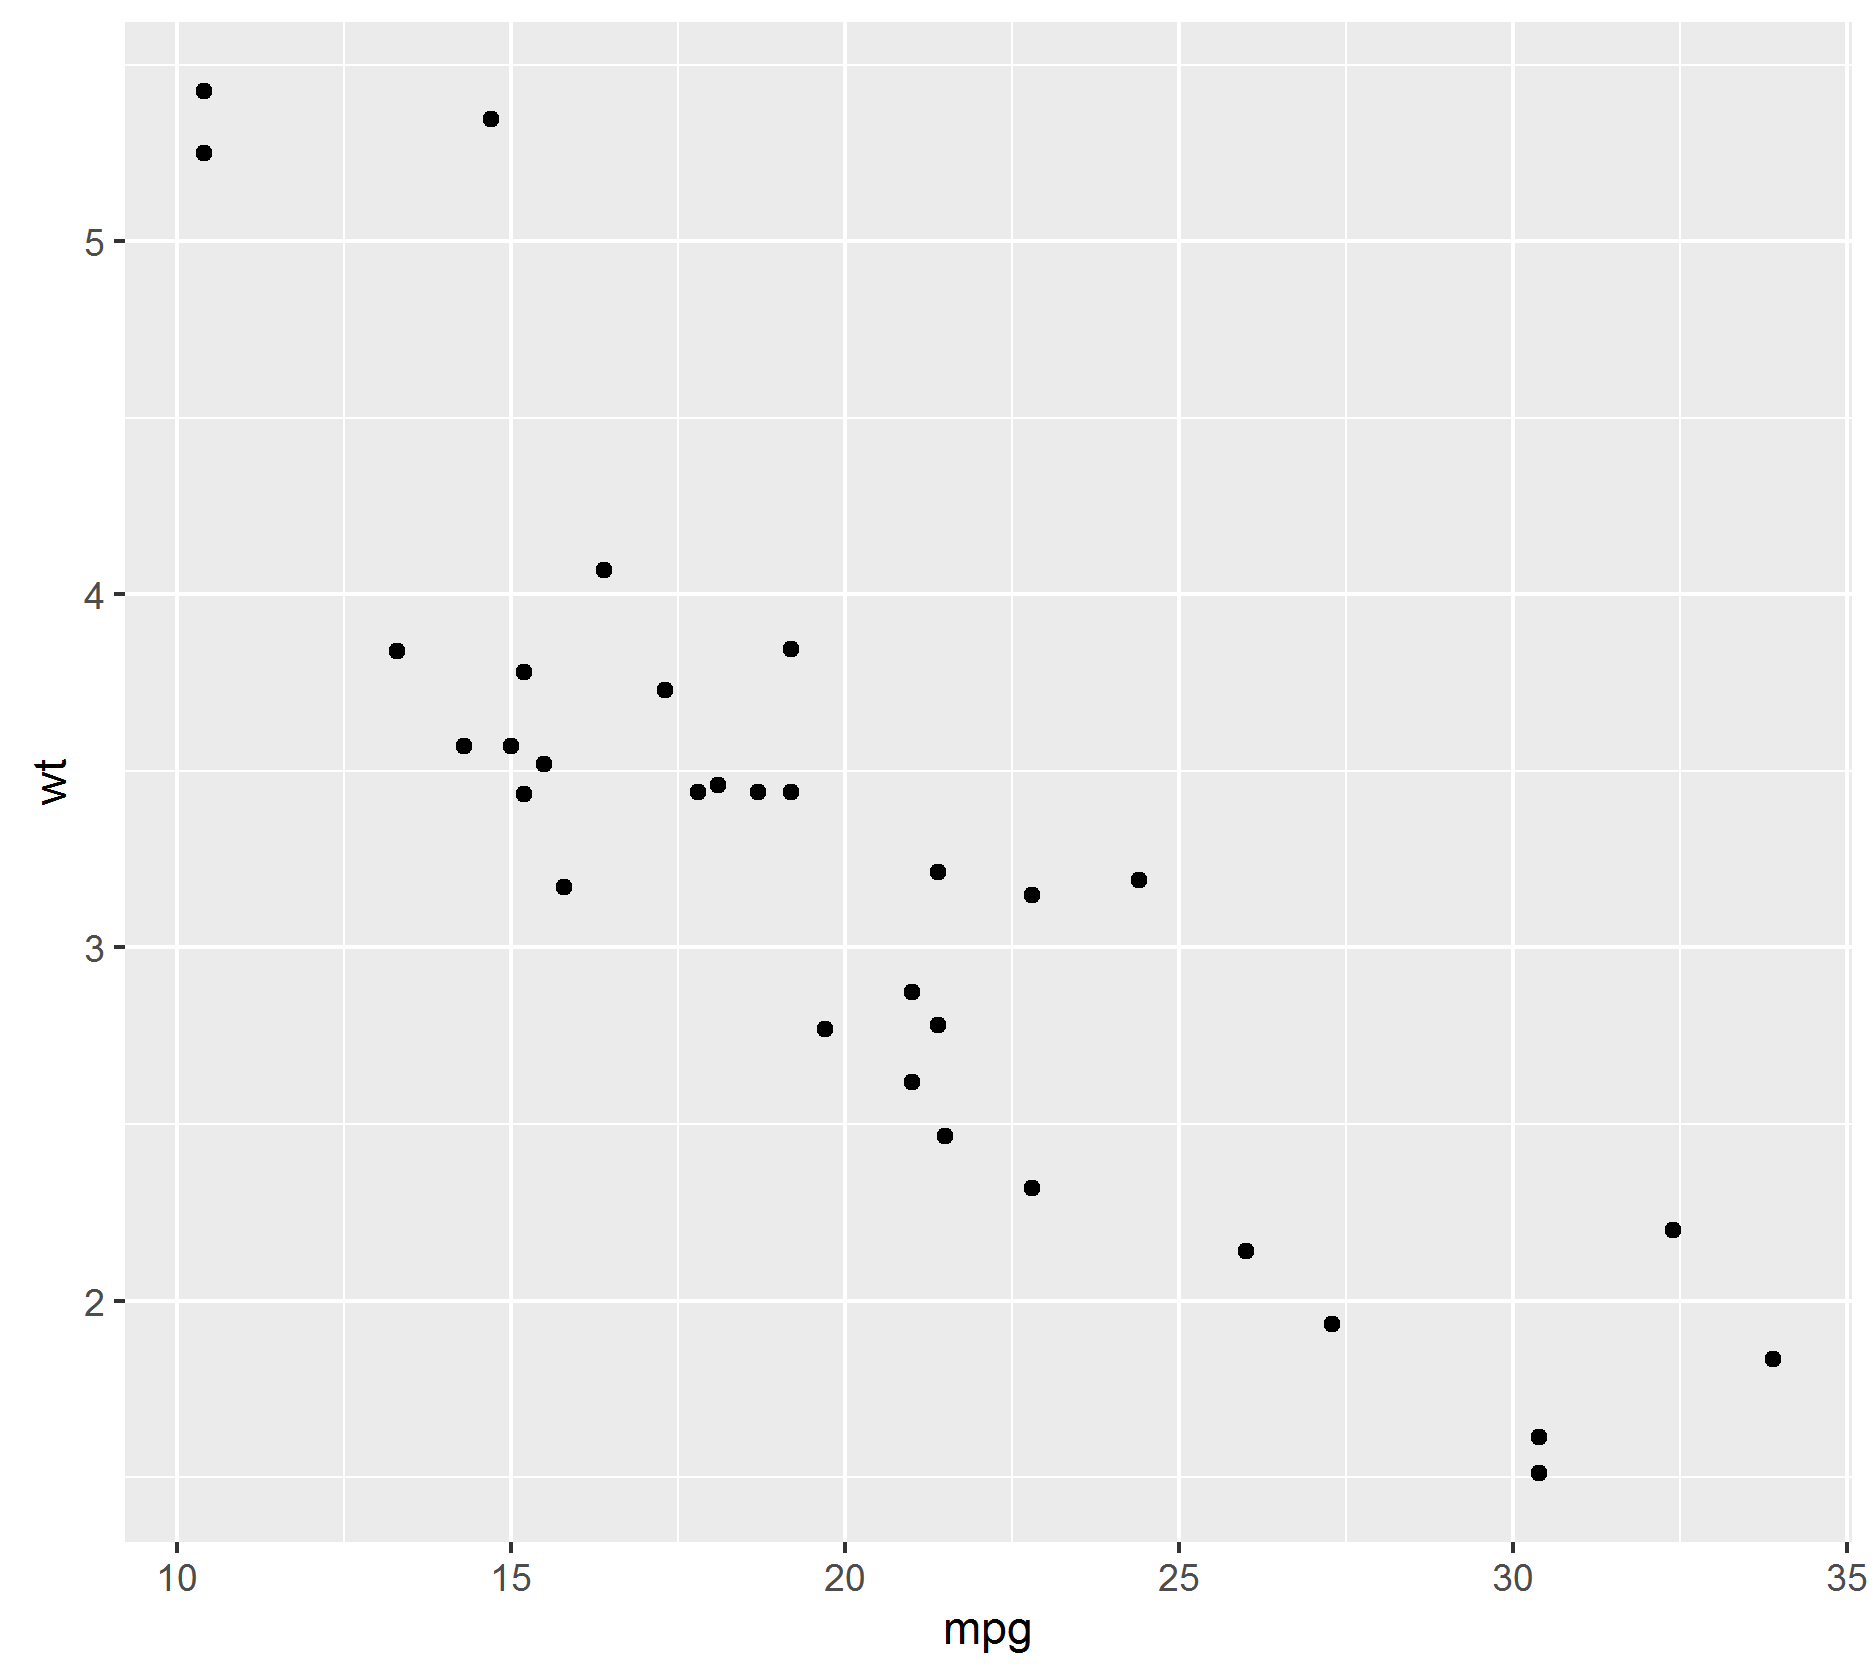 ggplot(data = mtcars, aes(x= mpg, y= wt) ) + geom_point()